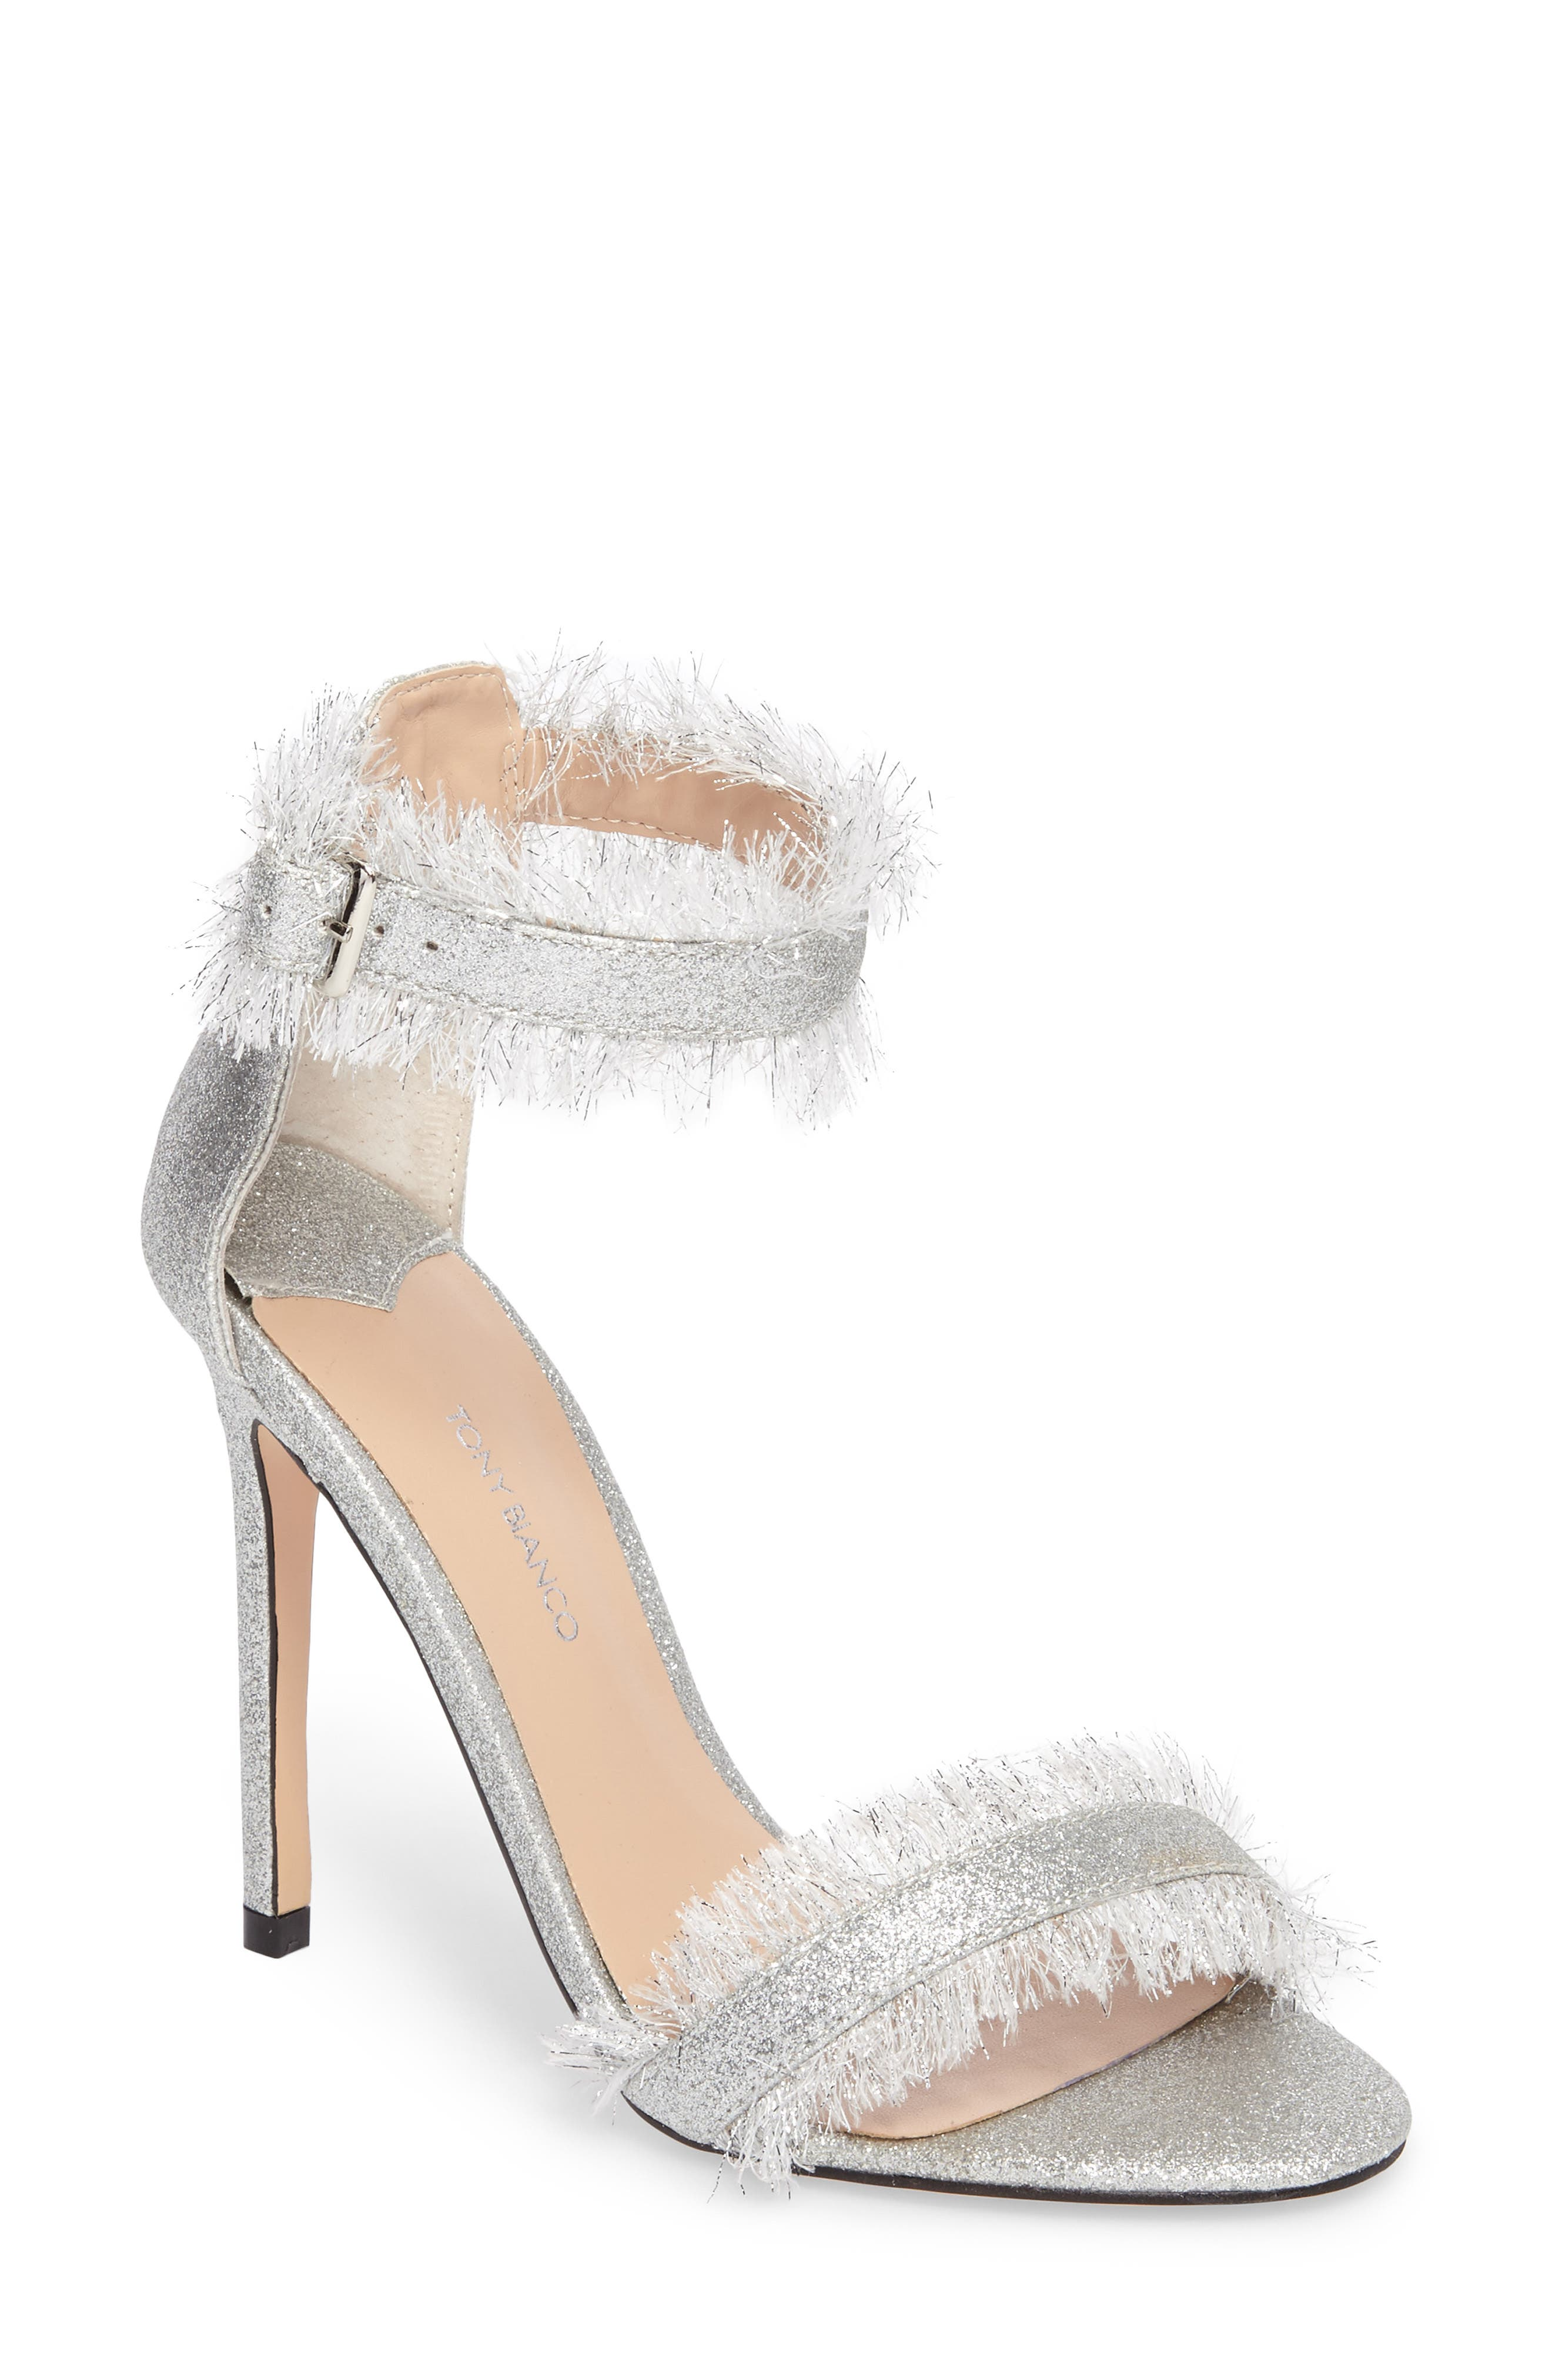 Kimi Fringed Strappy Sandal,                             Main thumbnail 1, color,                             Silver Glitter